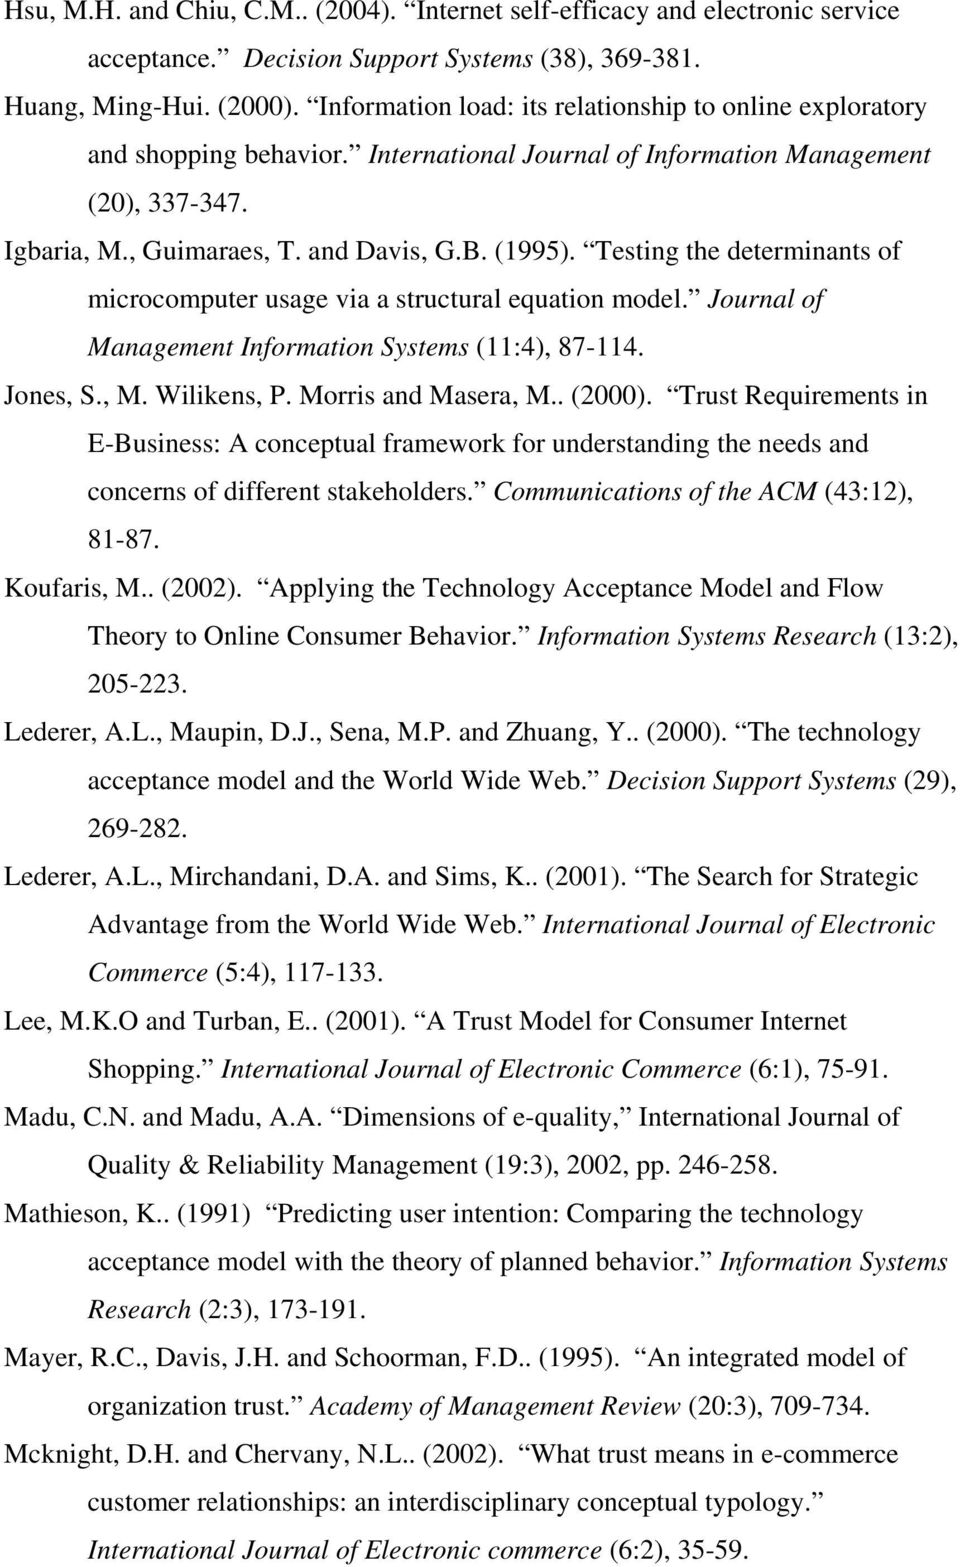 Testing the determinants of microcomputer usage via a structural equation model. Journal of Management Information Systems (11:4), 87-114. Jones, S., M. Wilikens, P. Morris and Masera, M.. (2000).